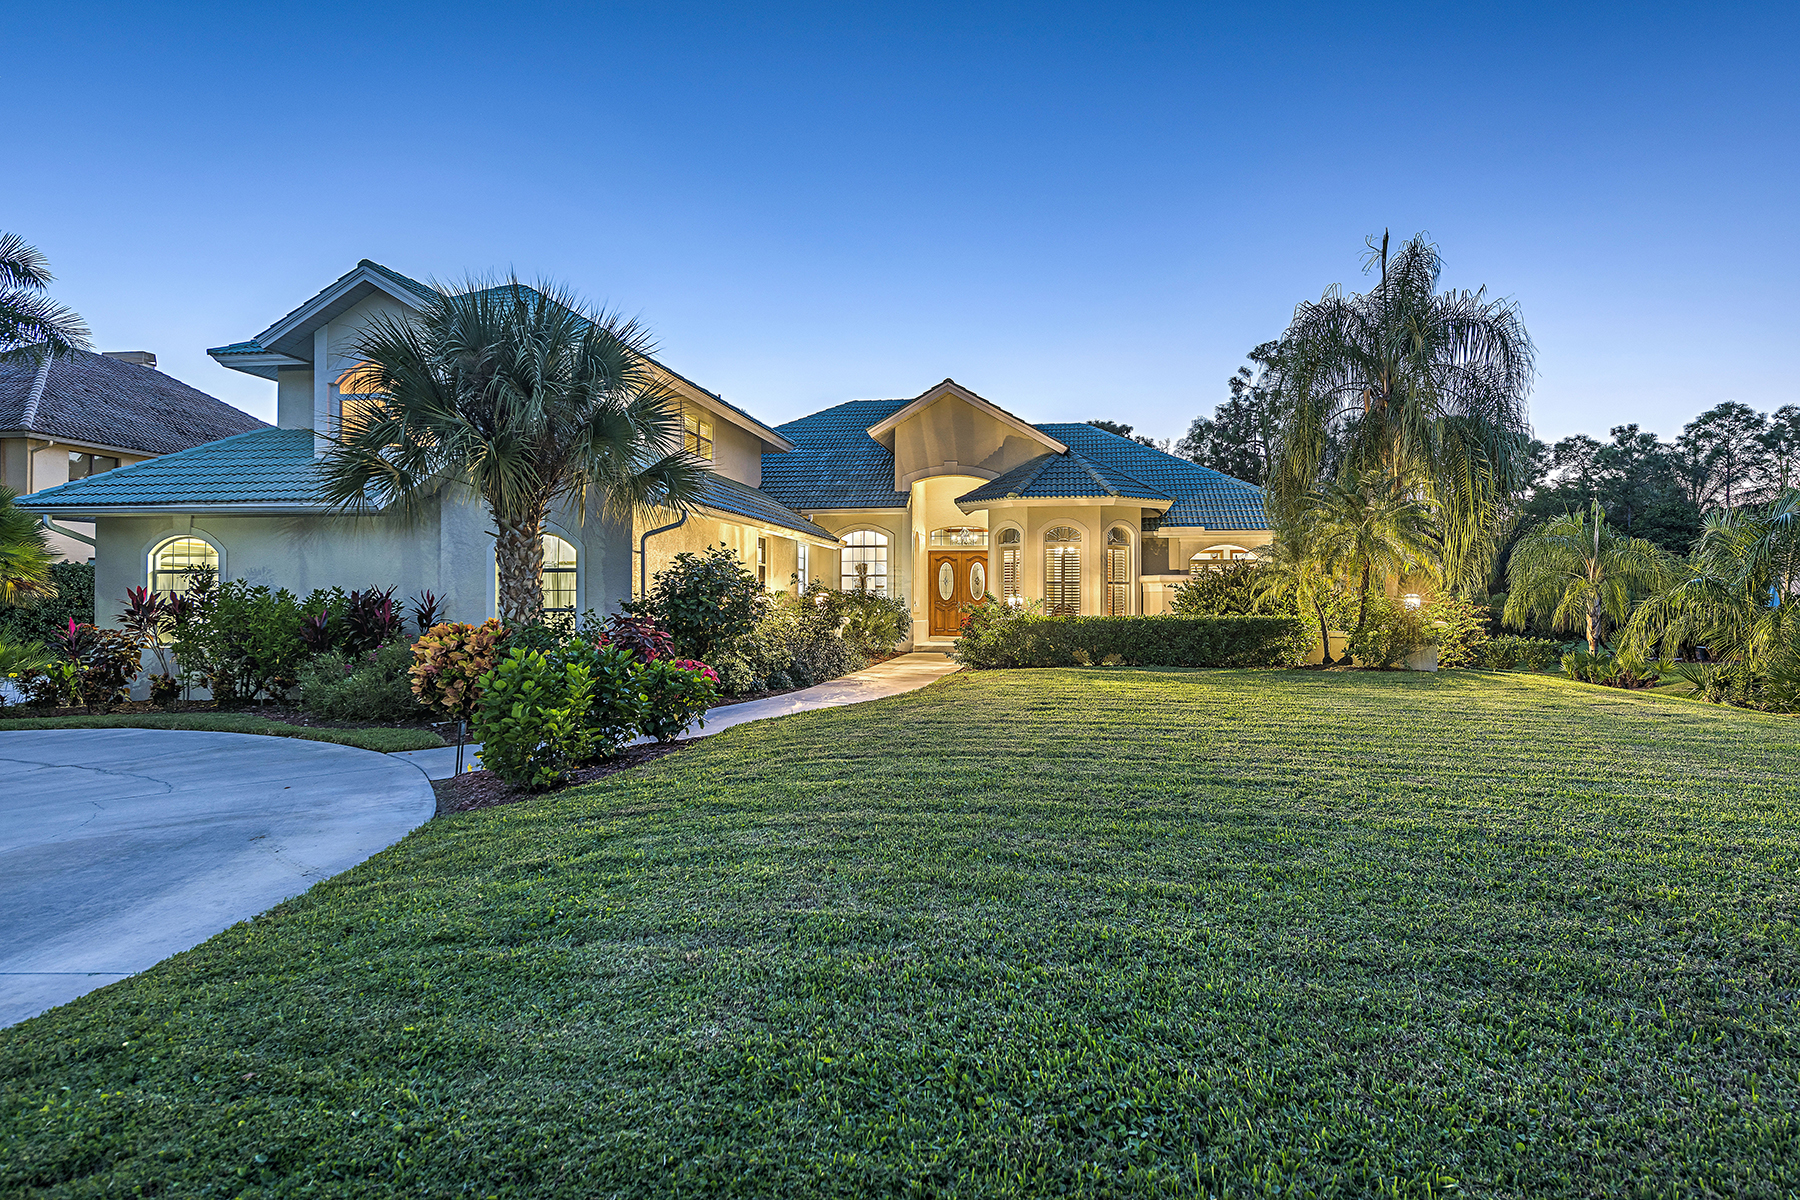 Single Family Home for Sale at Quail Woods 9133 The Ln Naples, Florida, 34109 United States